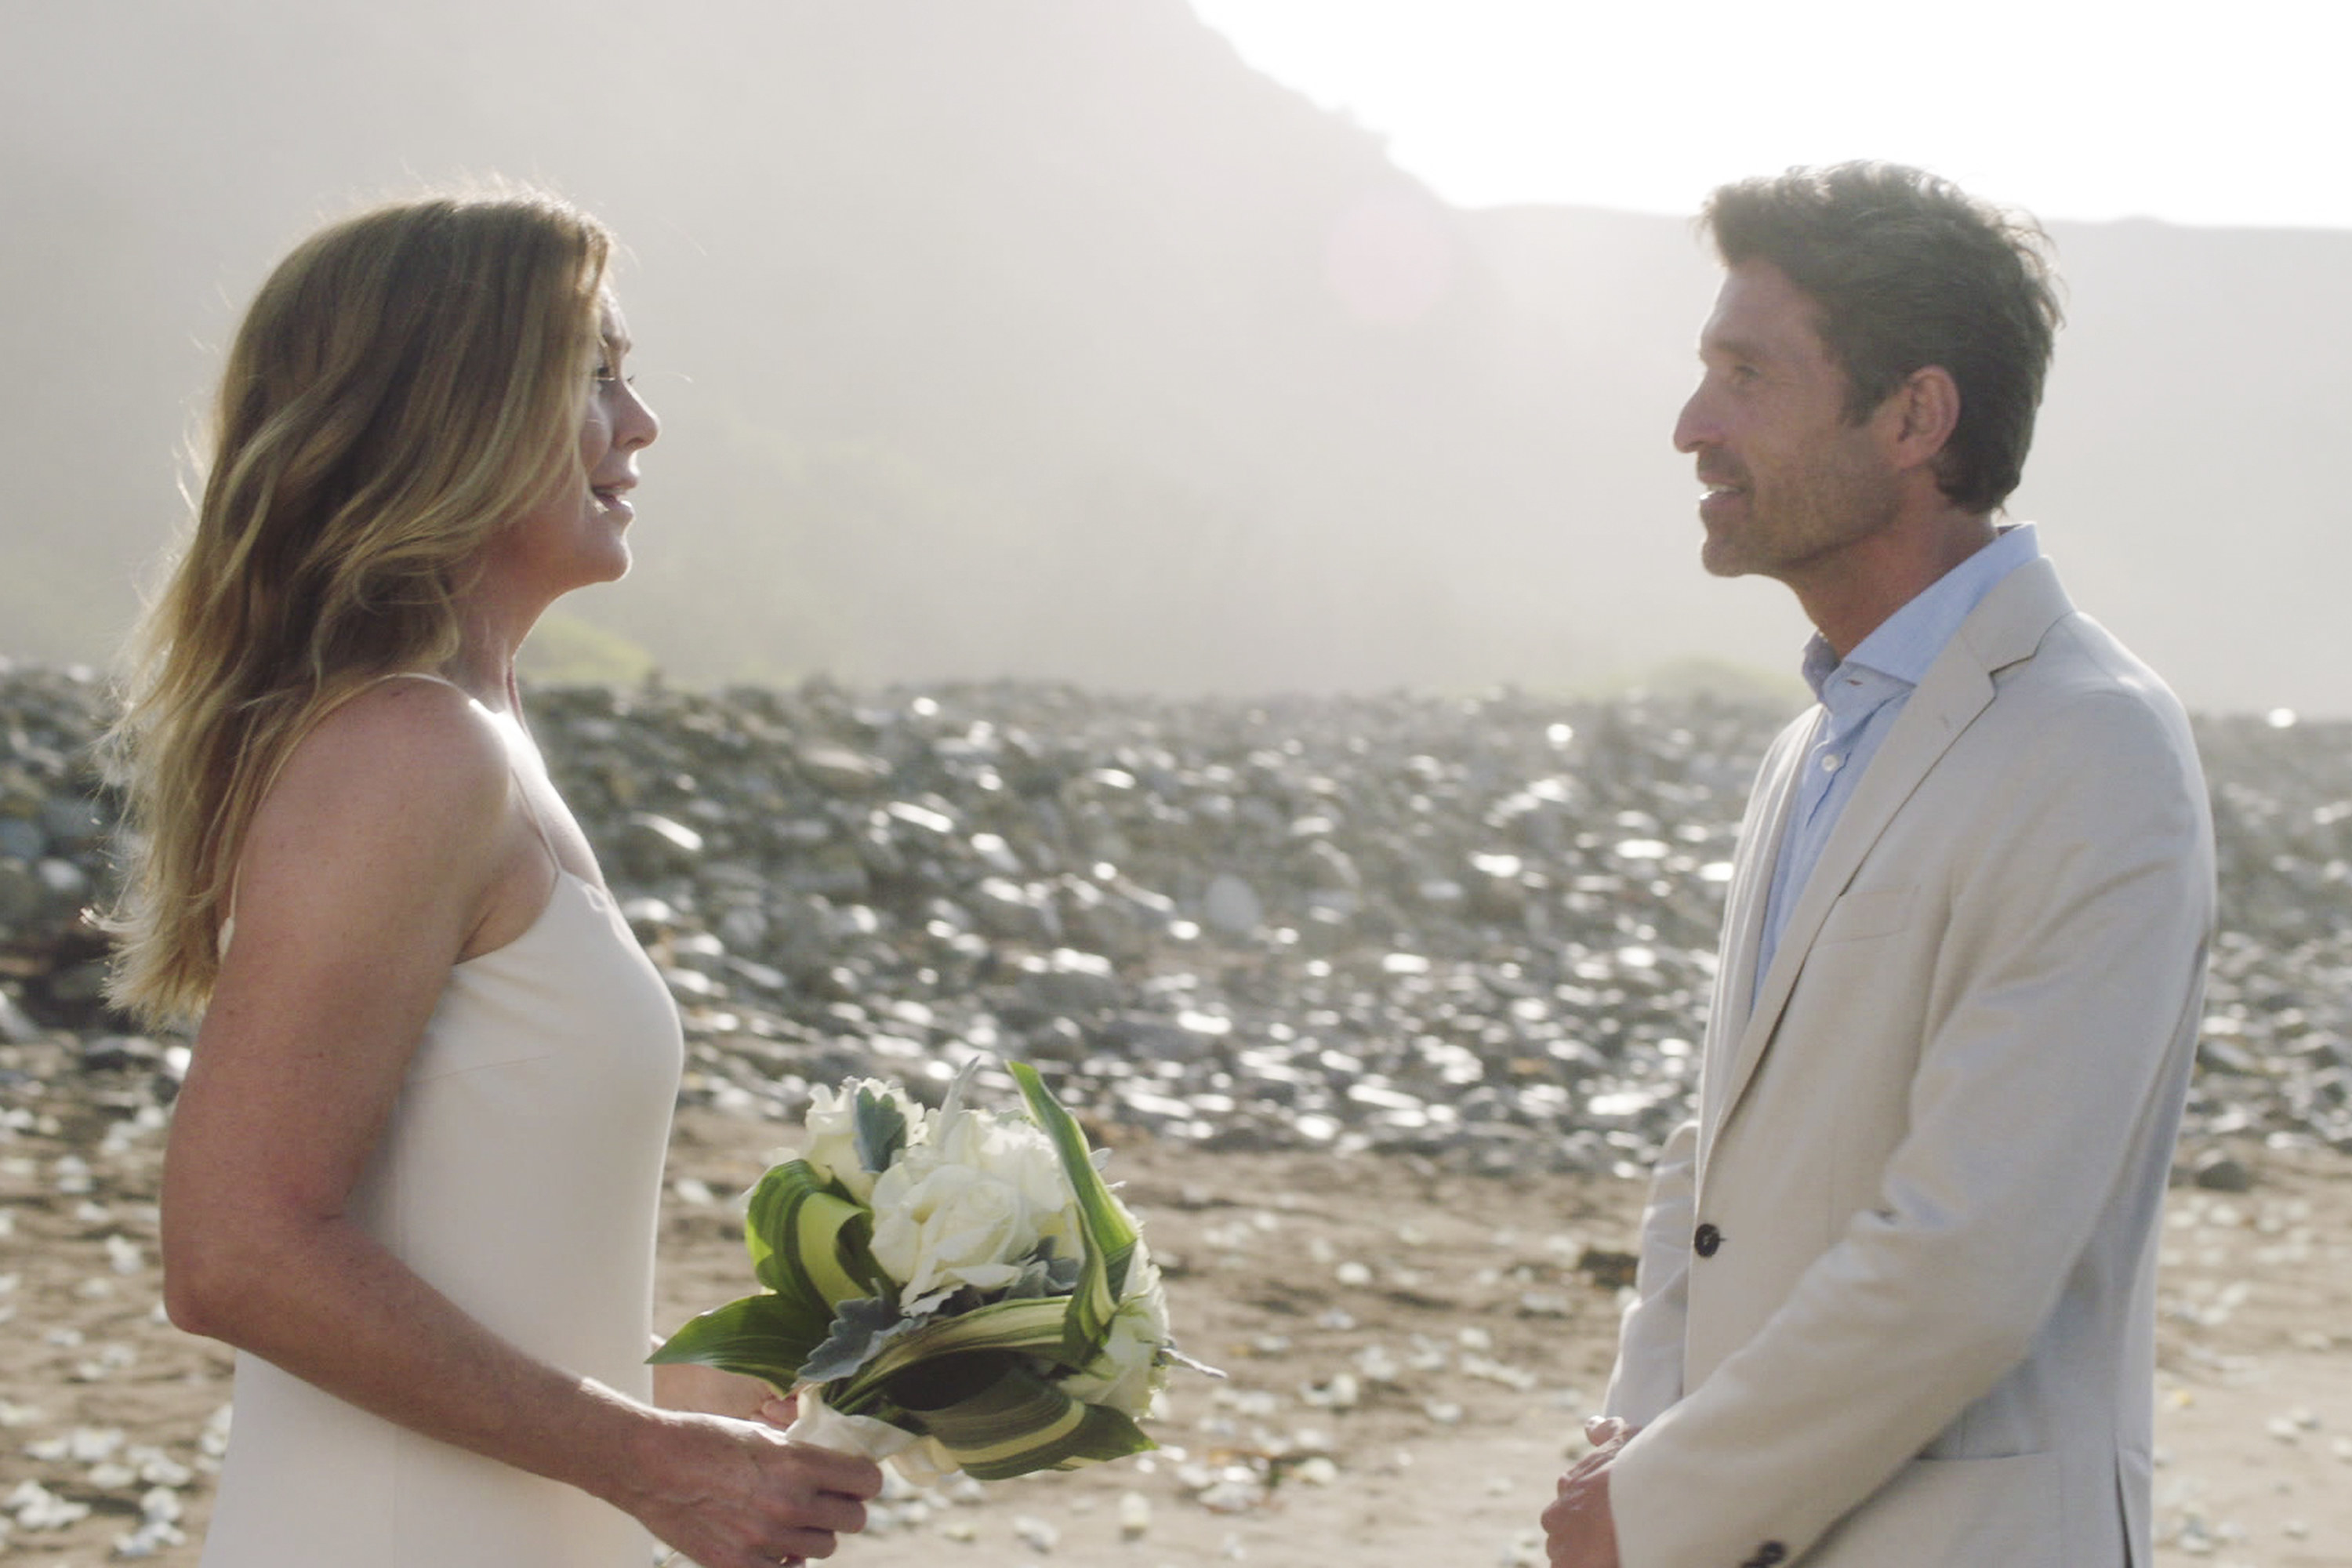 Pompeo and Dempsey during Derek and Meredith's wedding in Grey's Anatomy